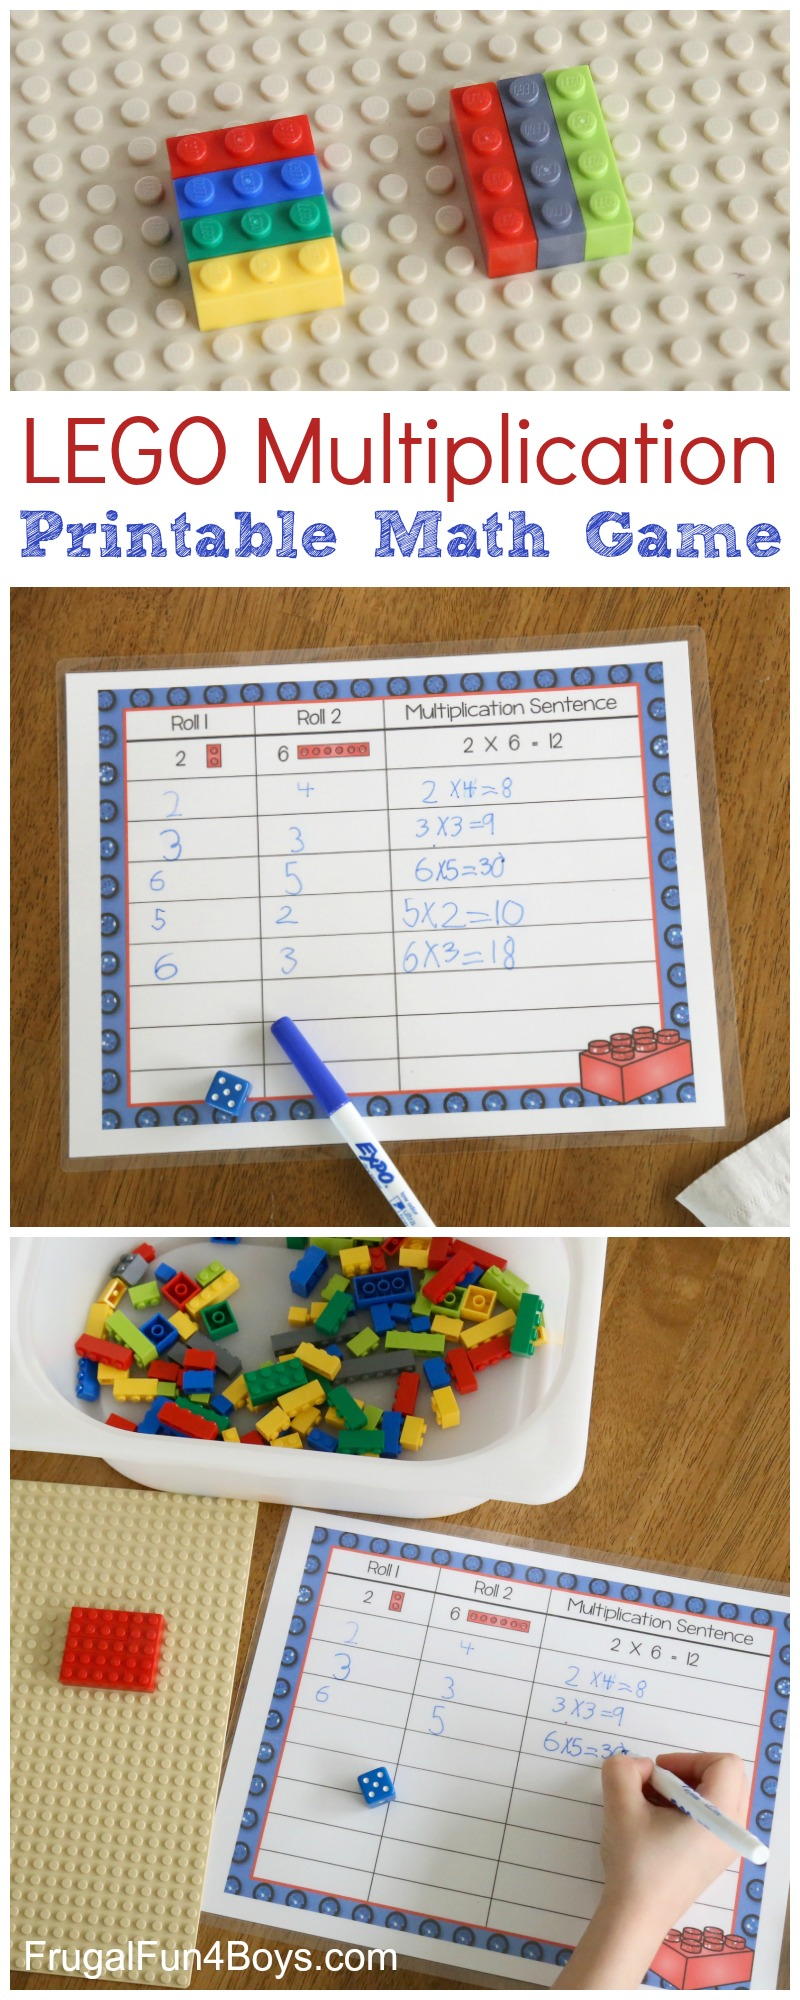 LEGO Multiplication! Printable Math Activity